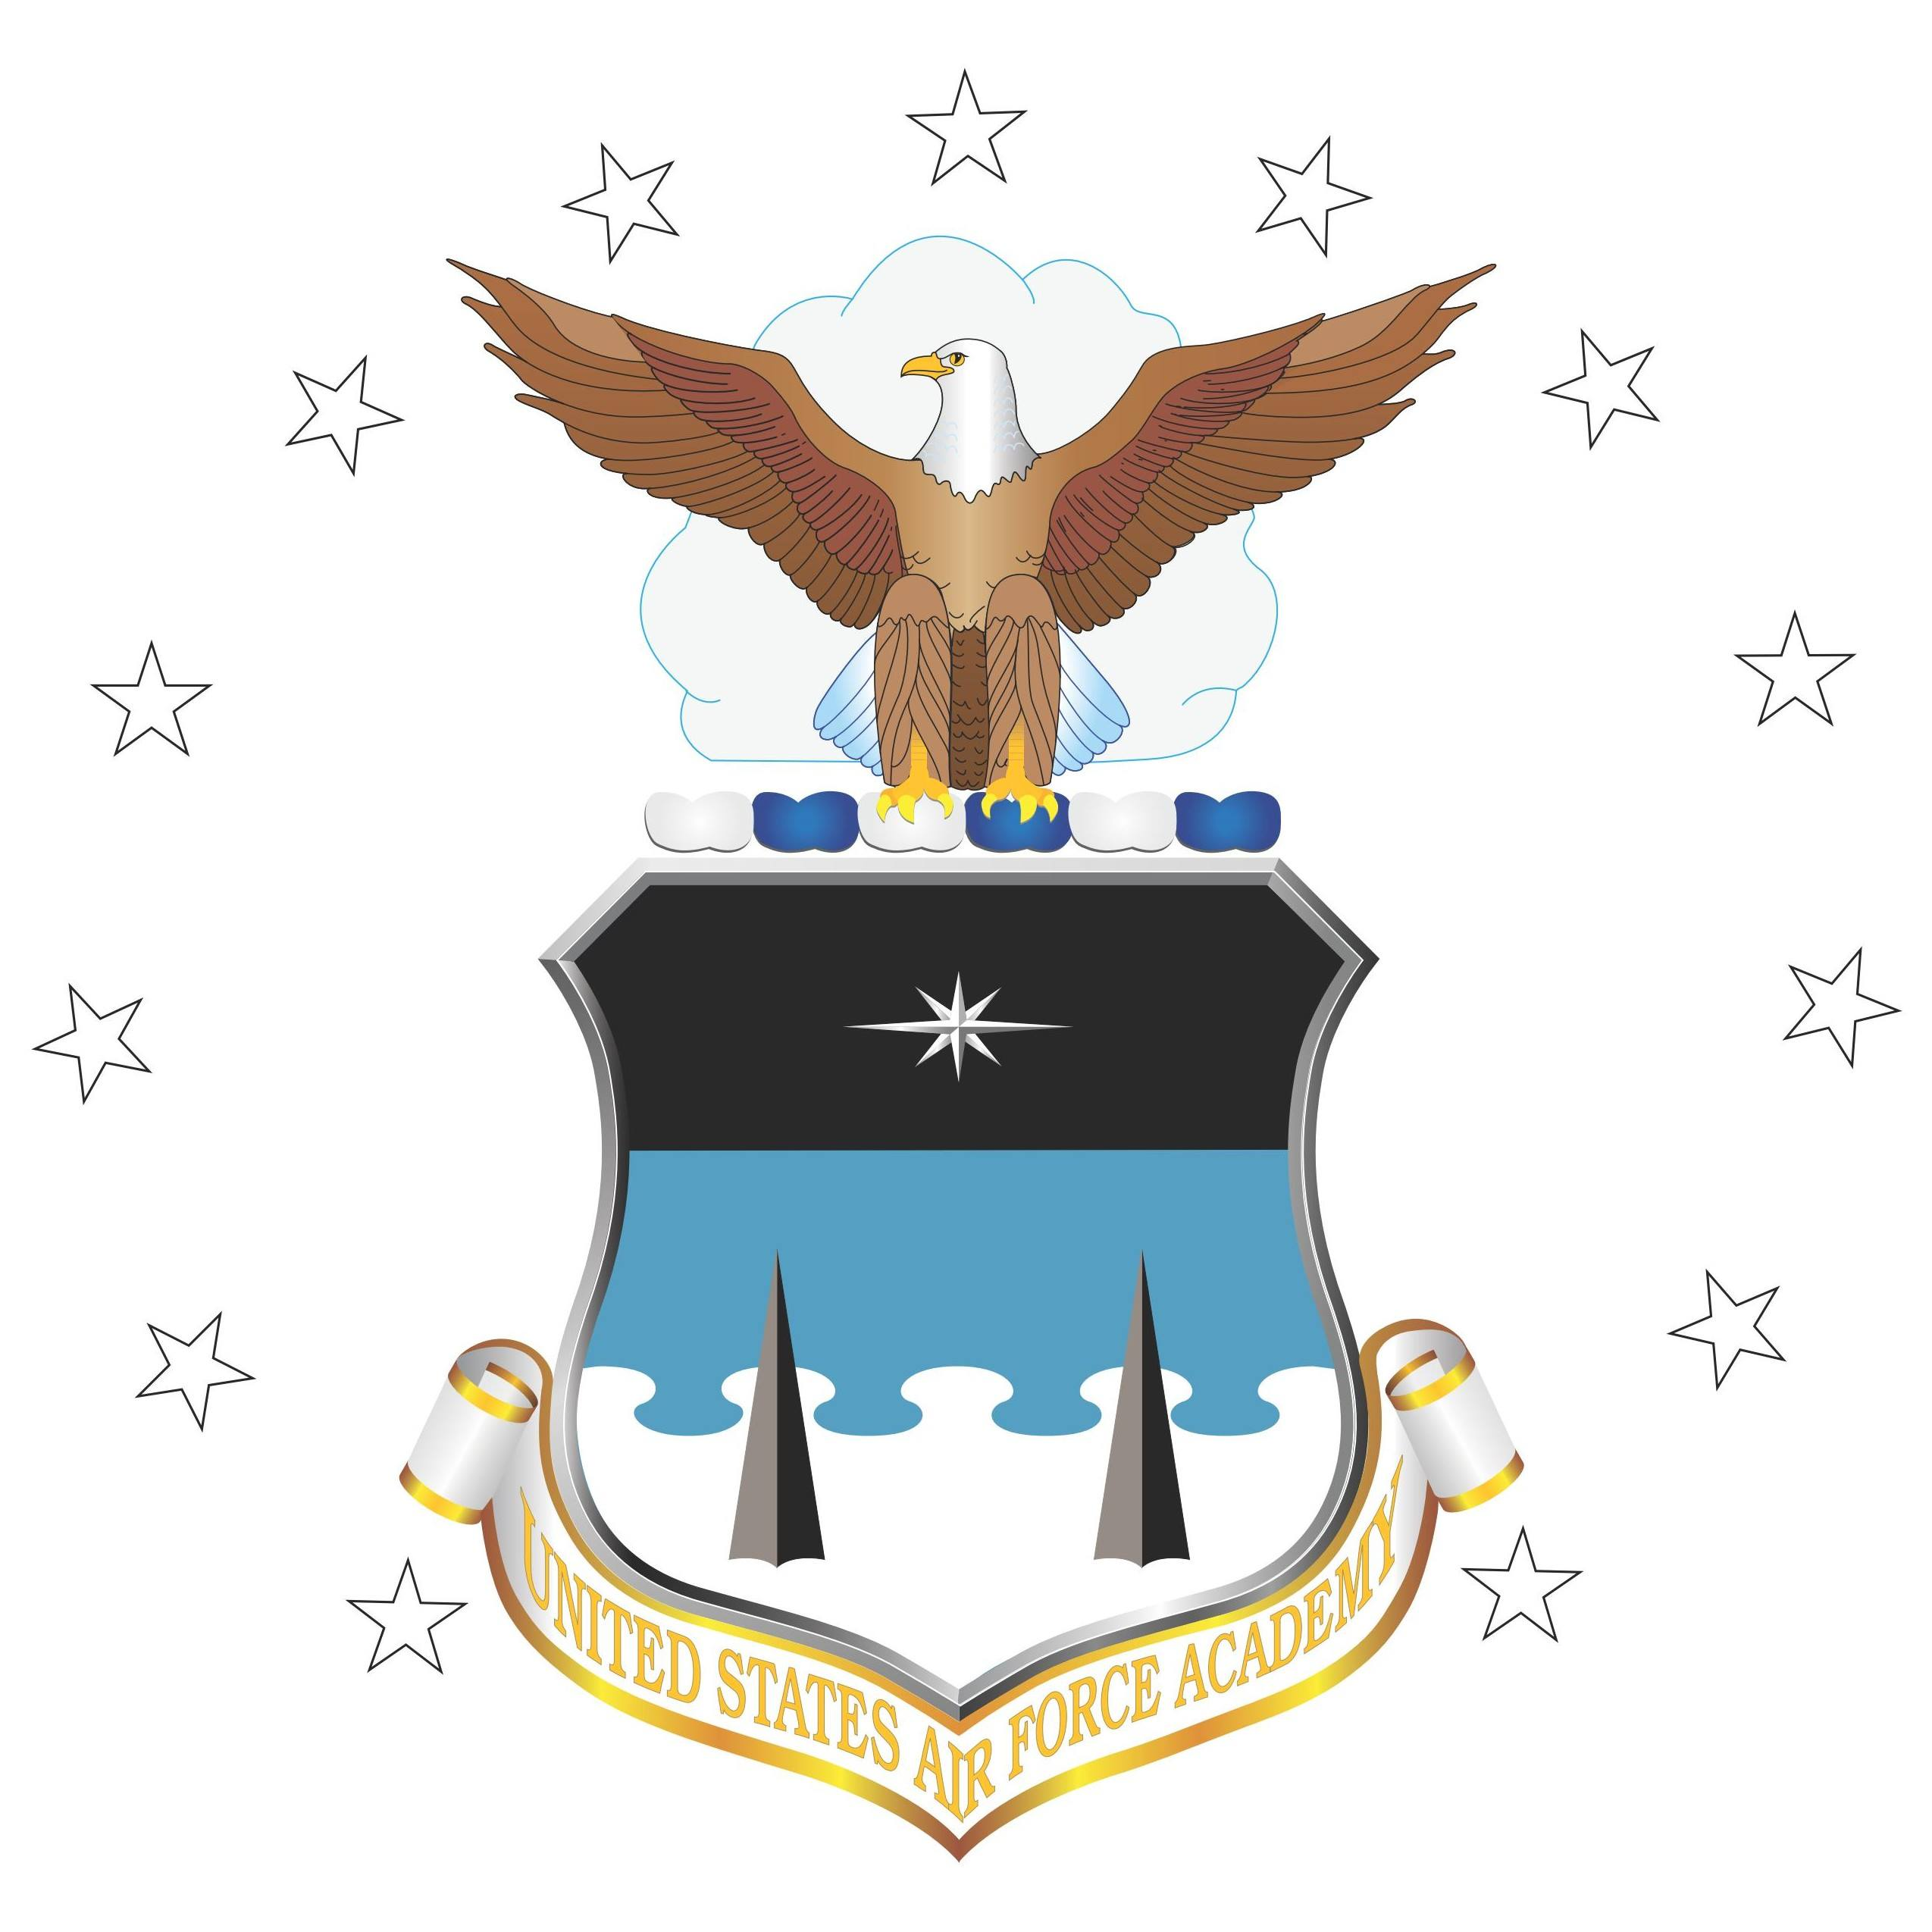 United States Air Force Academy Logo [USAFA   Air Force]